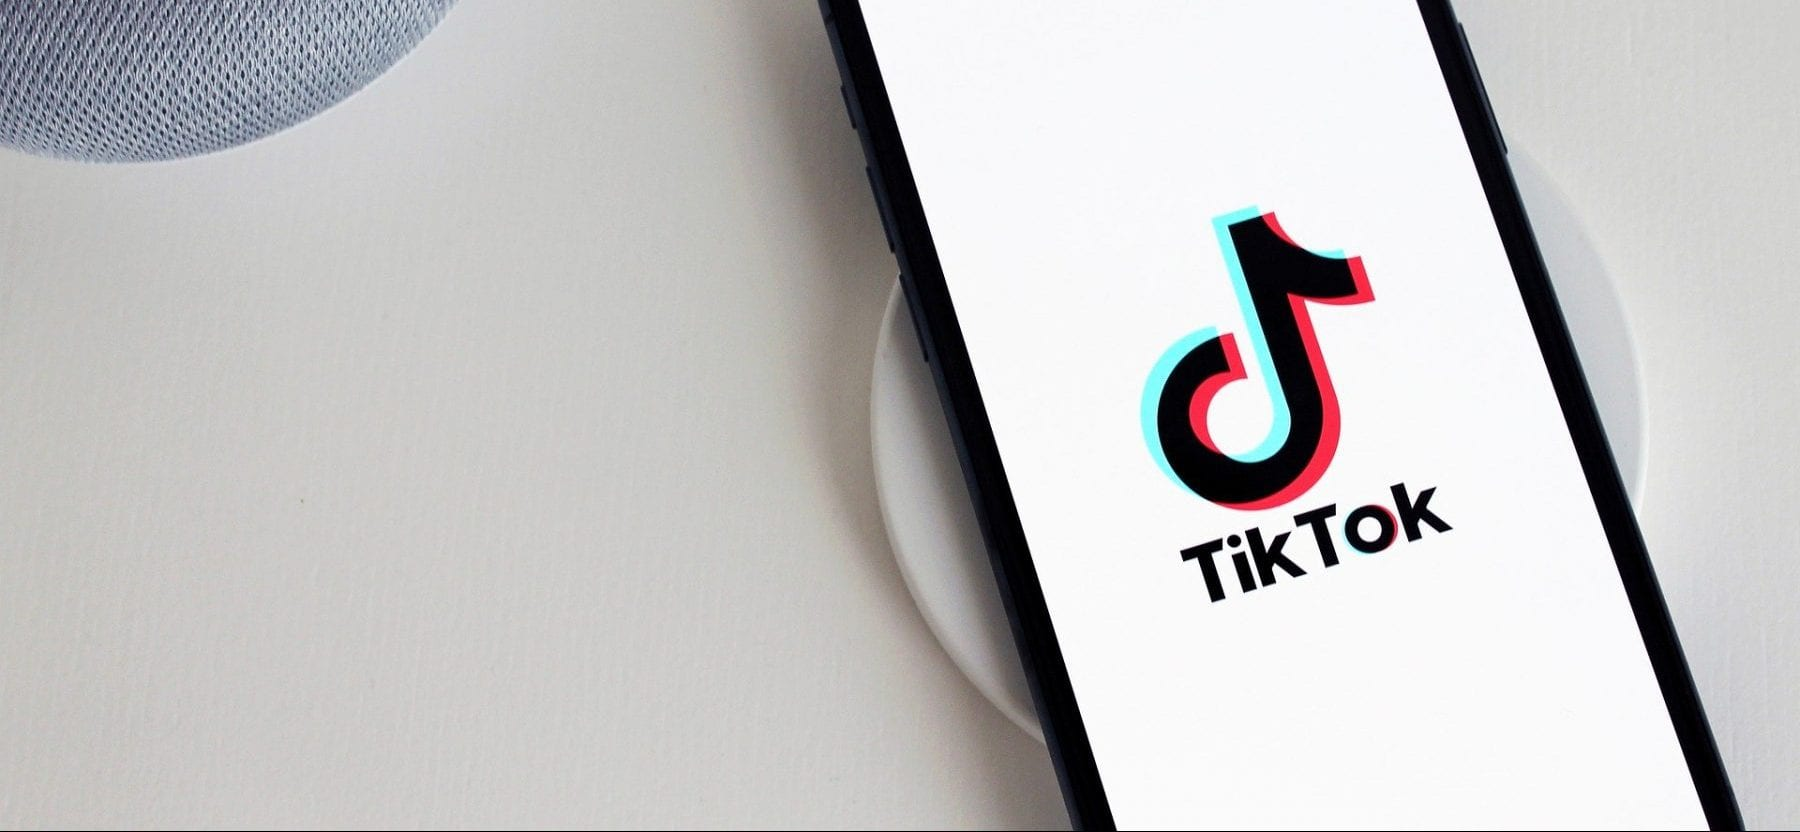 We Asked Our Experts: How Can Brands Get The Most From TikTok?